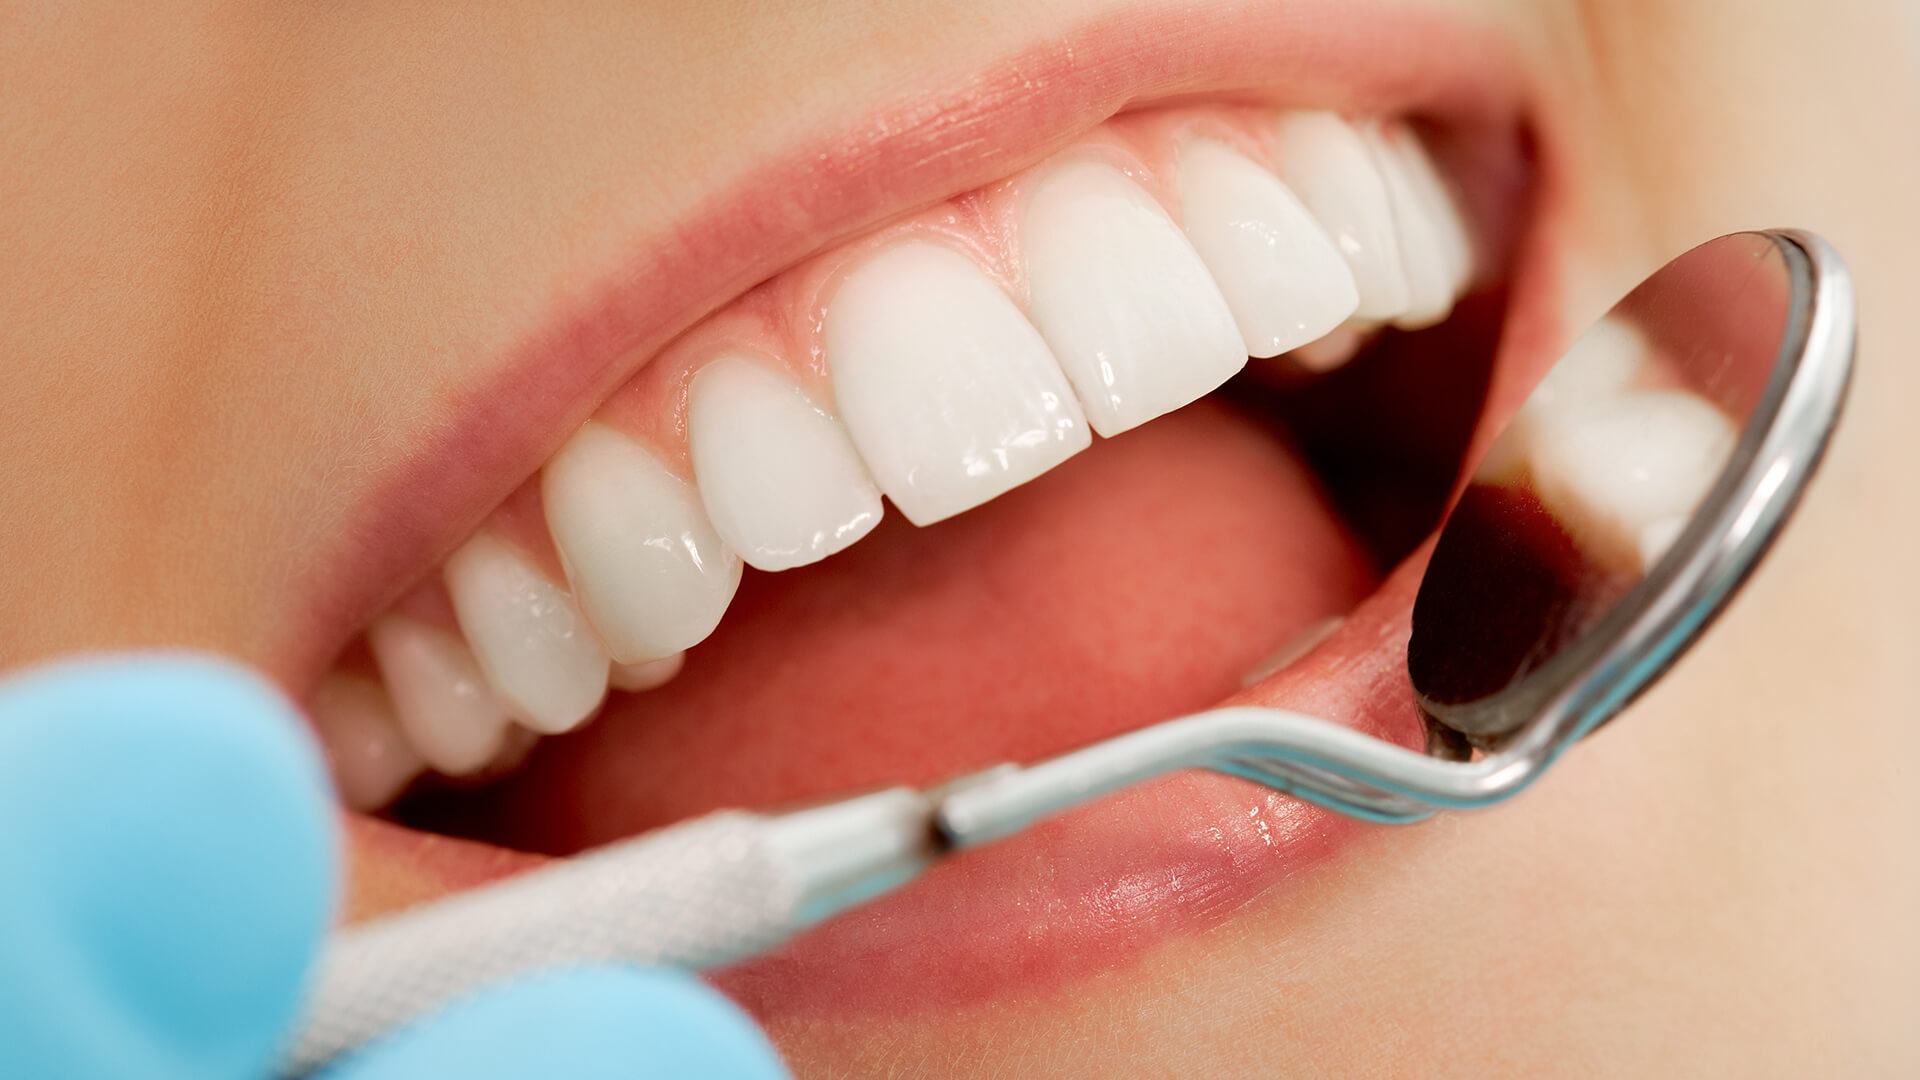 How To Strong Your Weak Teeth Enamel with these tips?